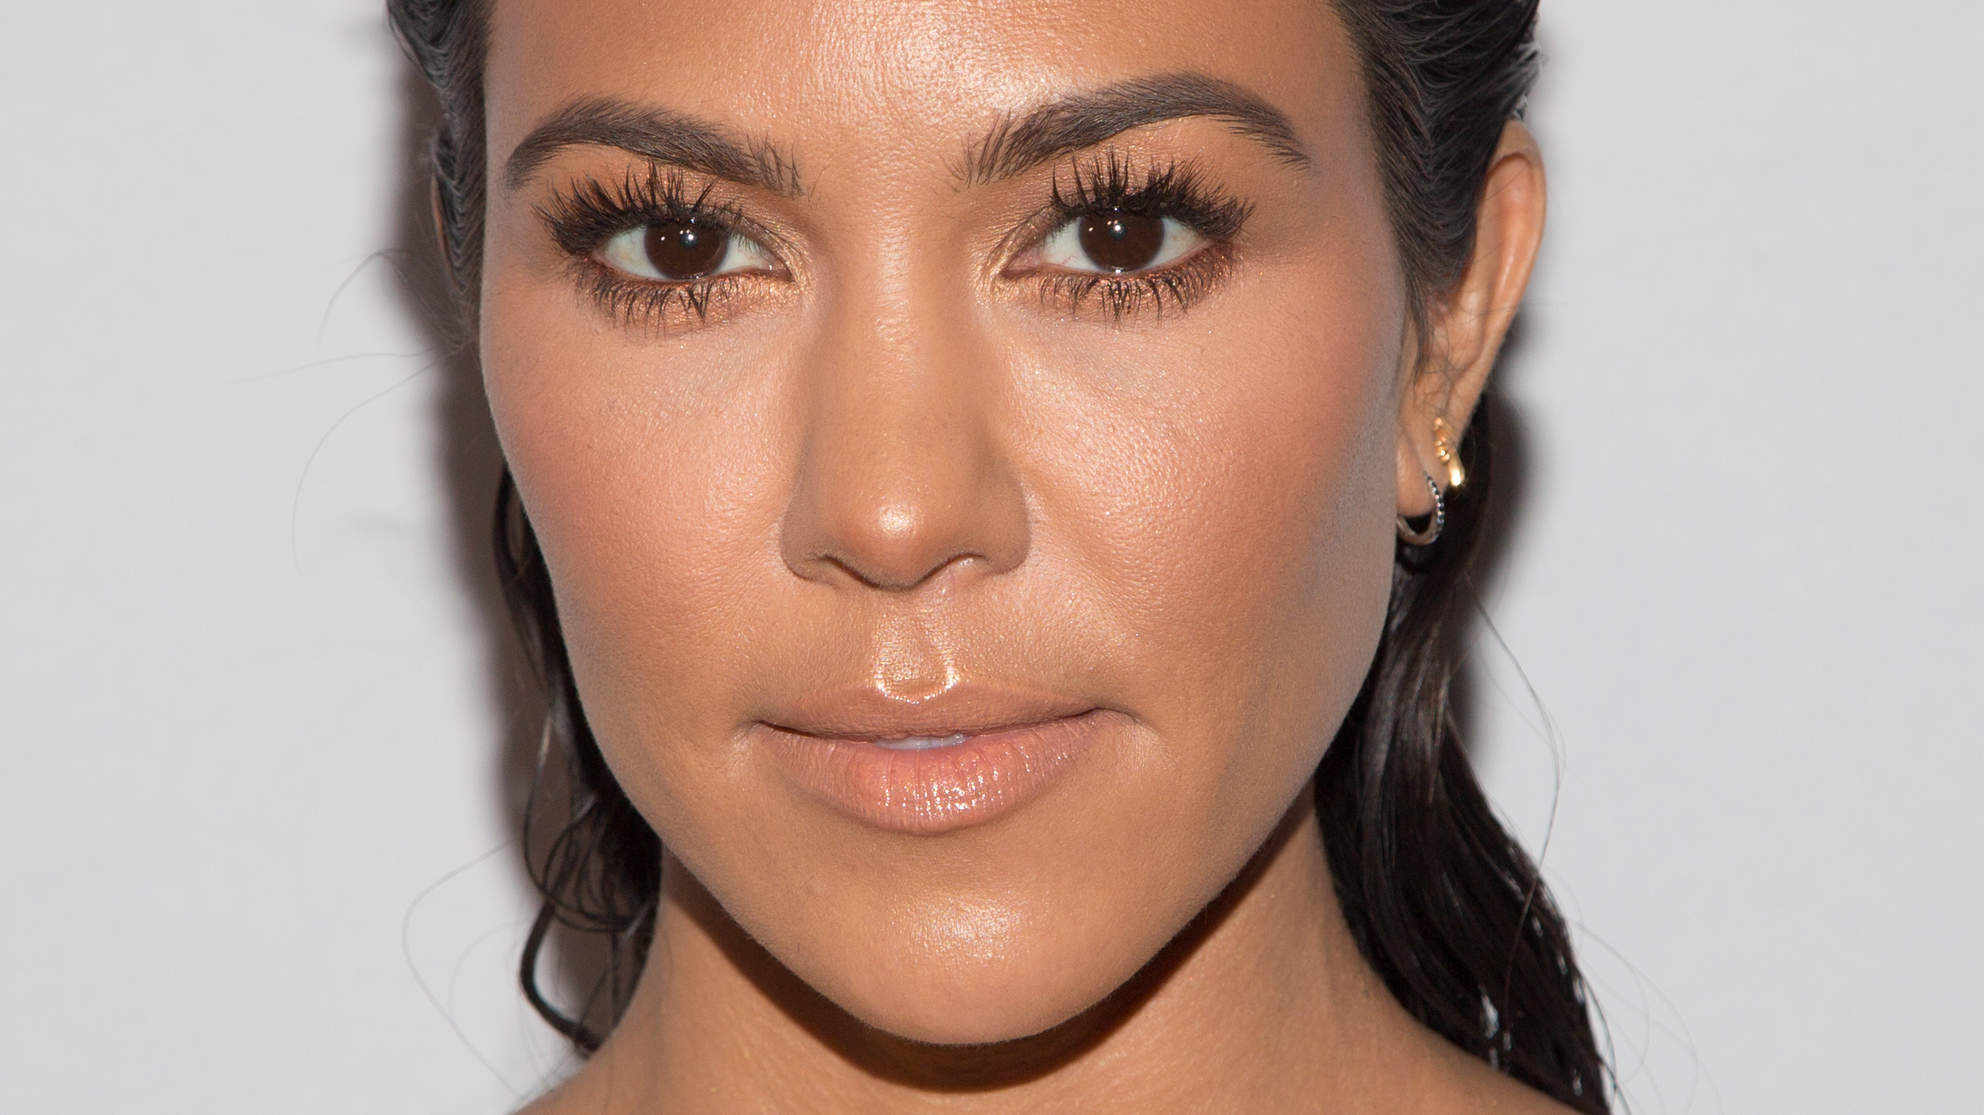 This Is Kourtney Kardashian's Favorite Foundation for Her Sensitive, Acne-Prone Skin